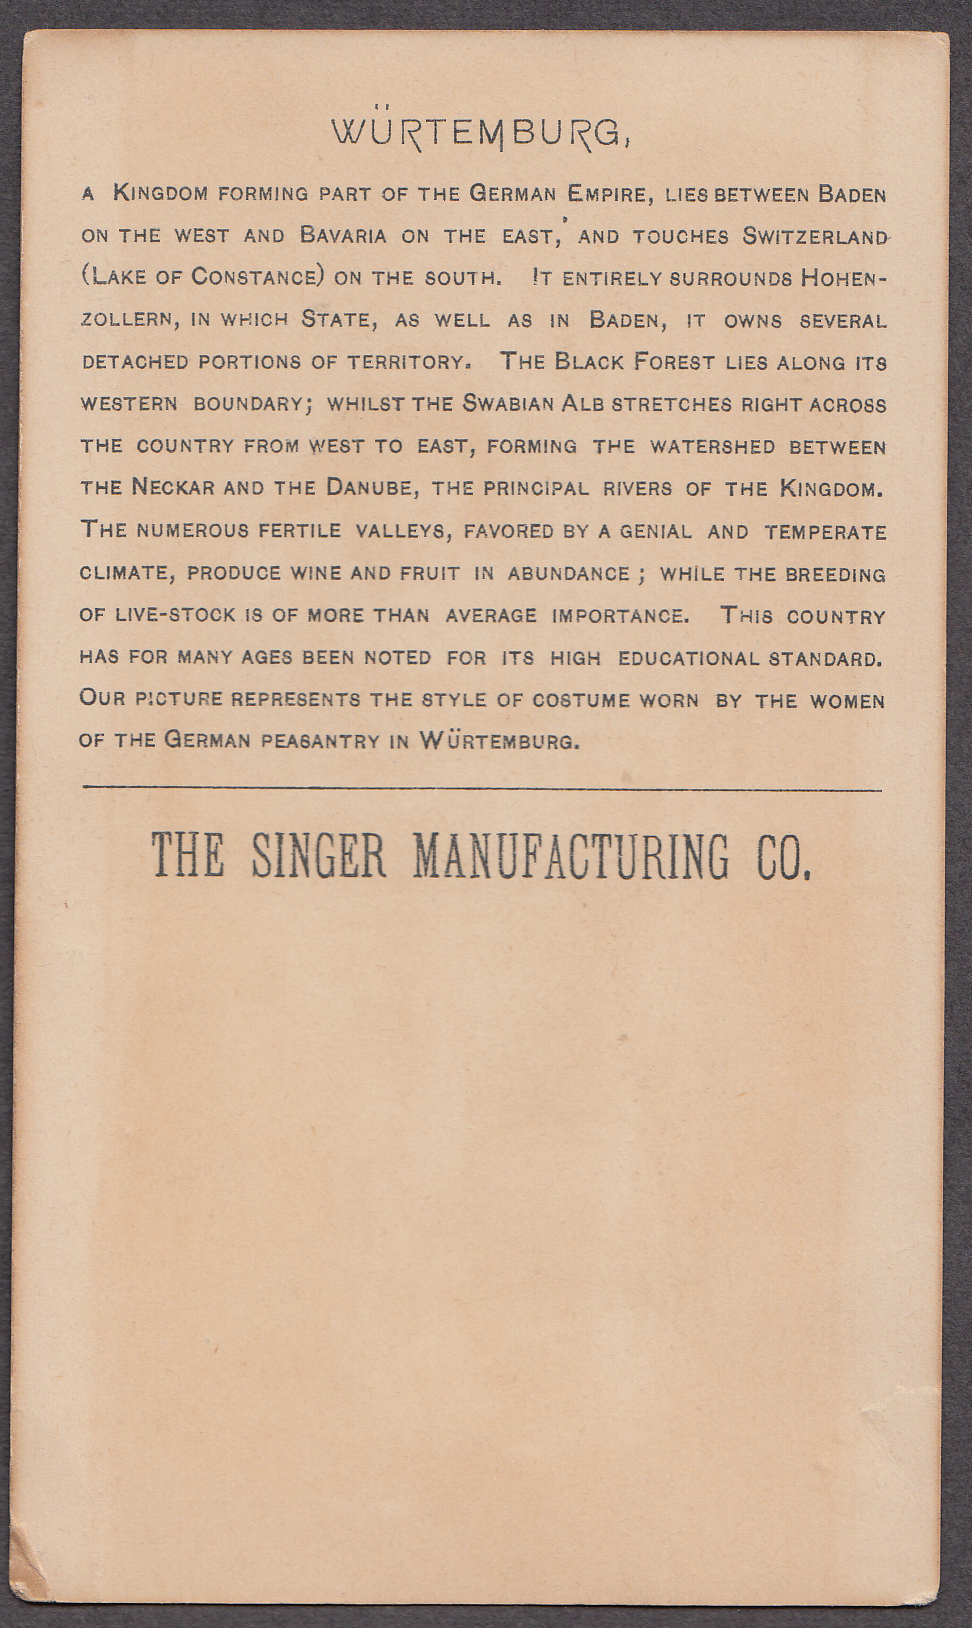 Singer Sewing Machine in Wurtemburg trade card 1894